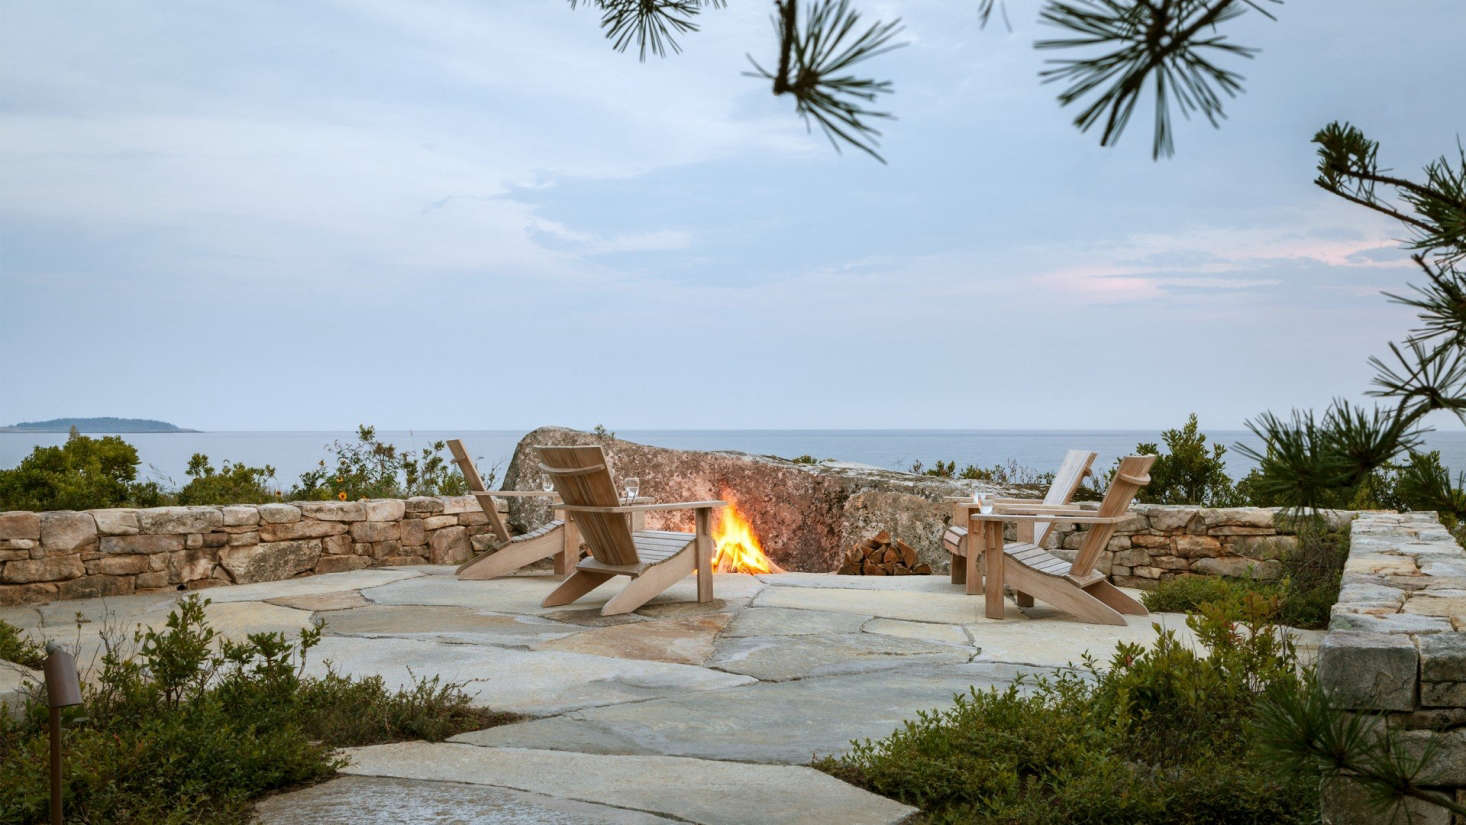 The angled boulder in front of the fire pit is the single largest rock placed on the site. The Adirondack chairs are from Crate & Barrel (though they&#8